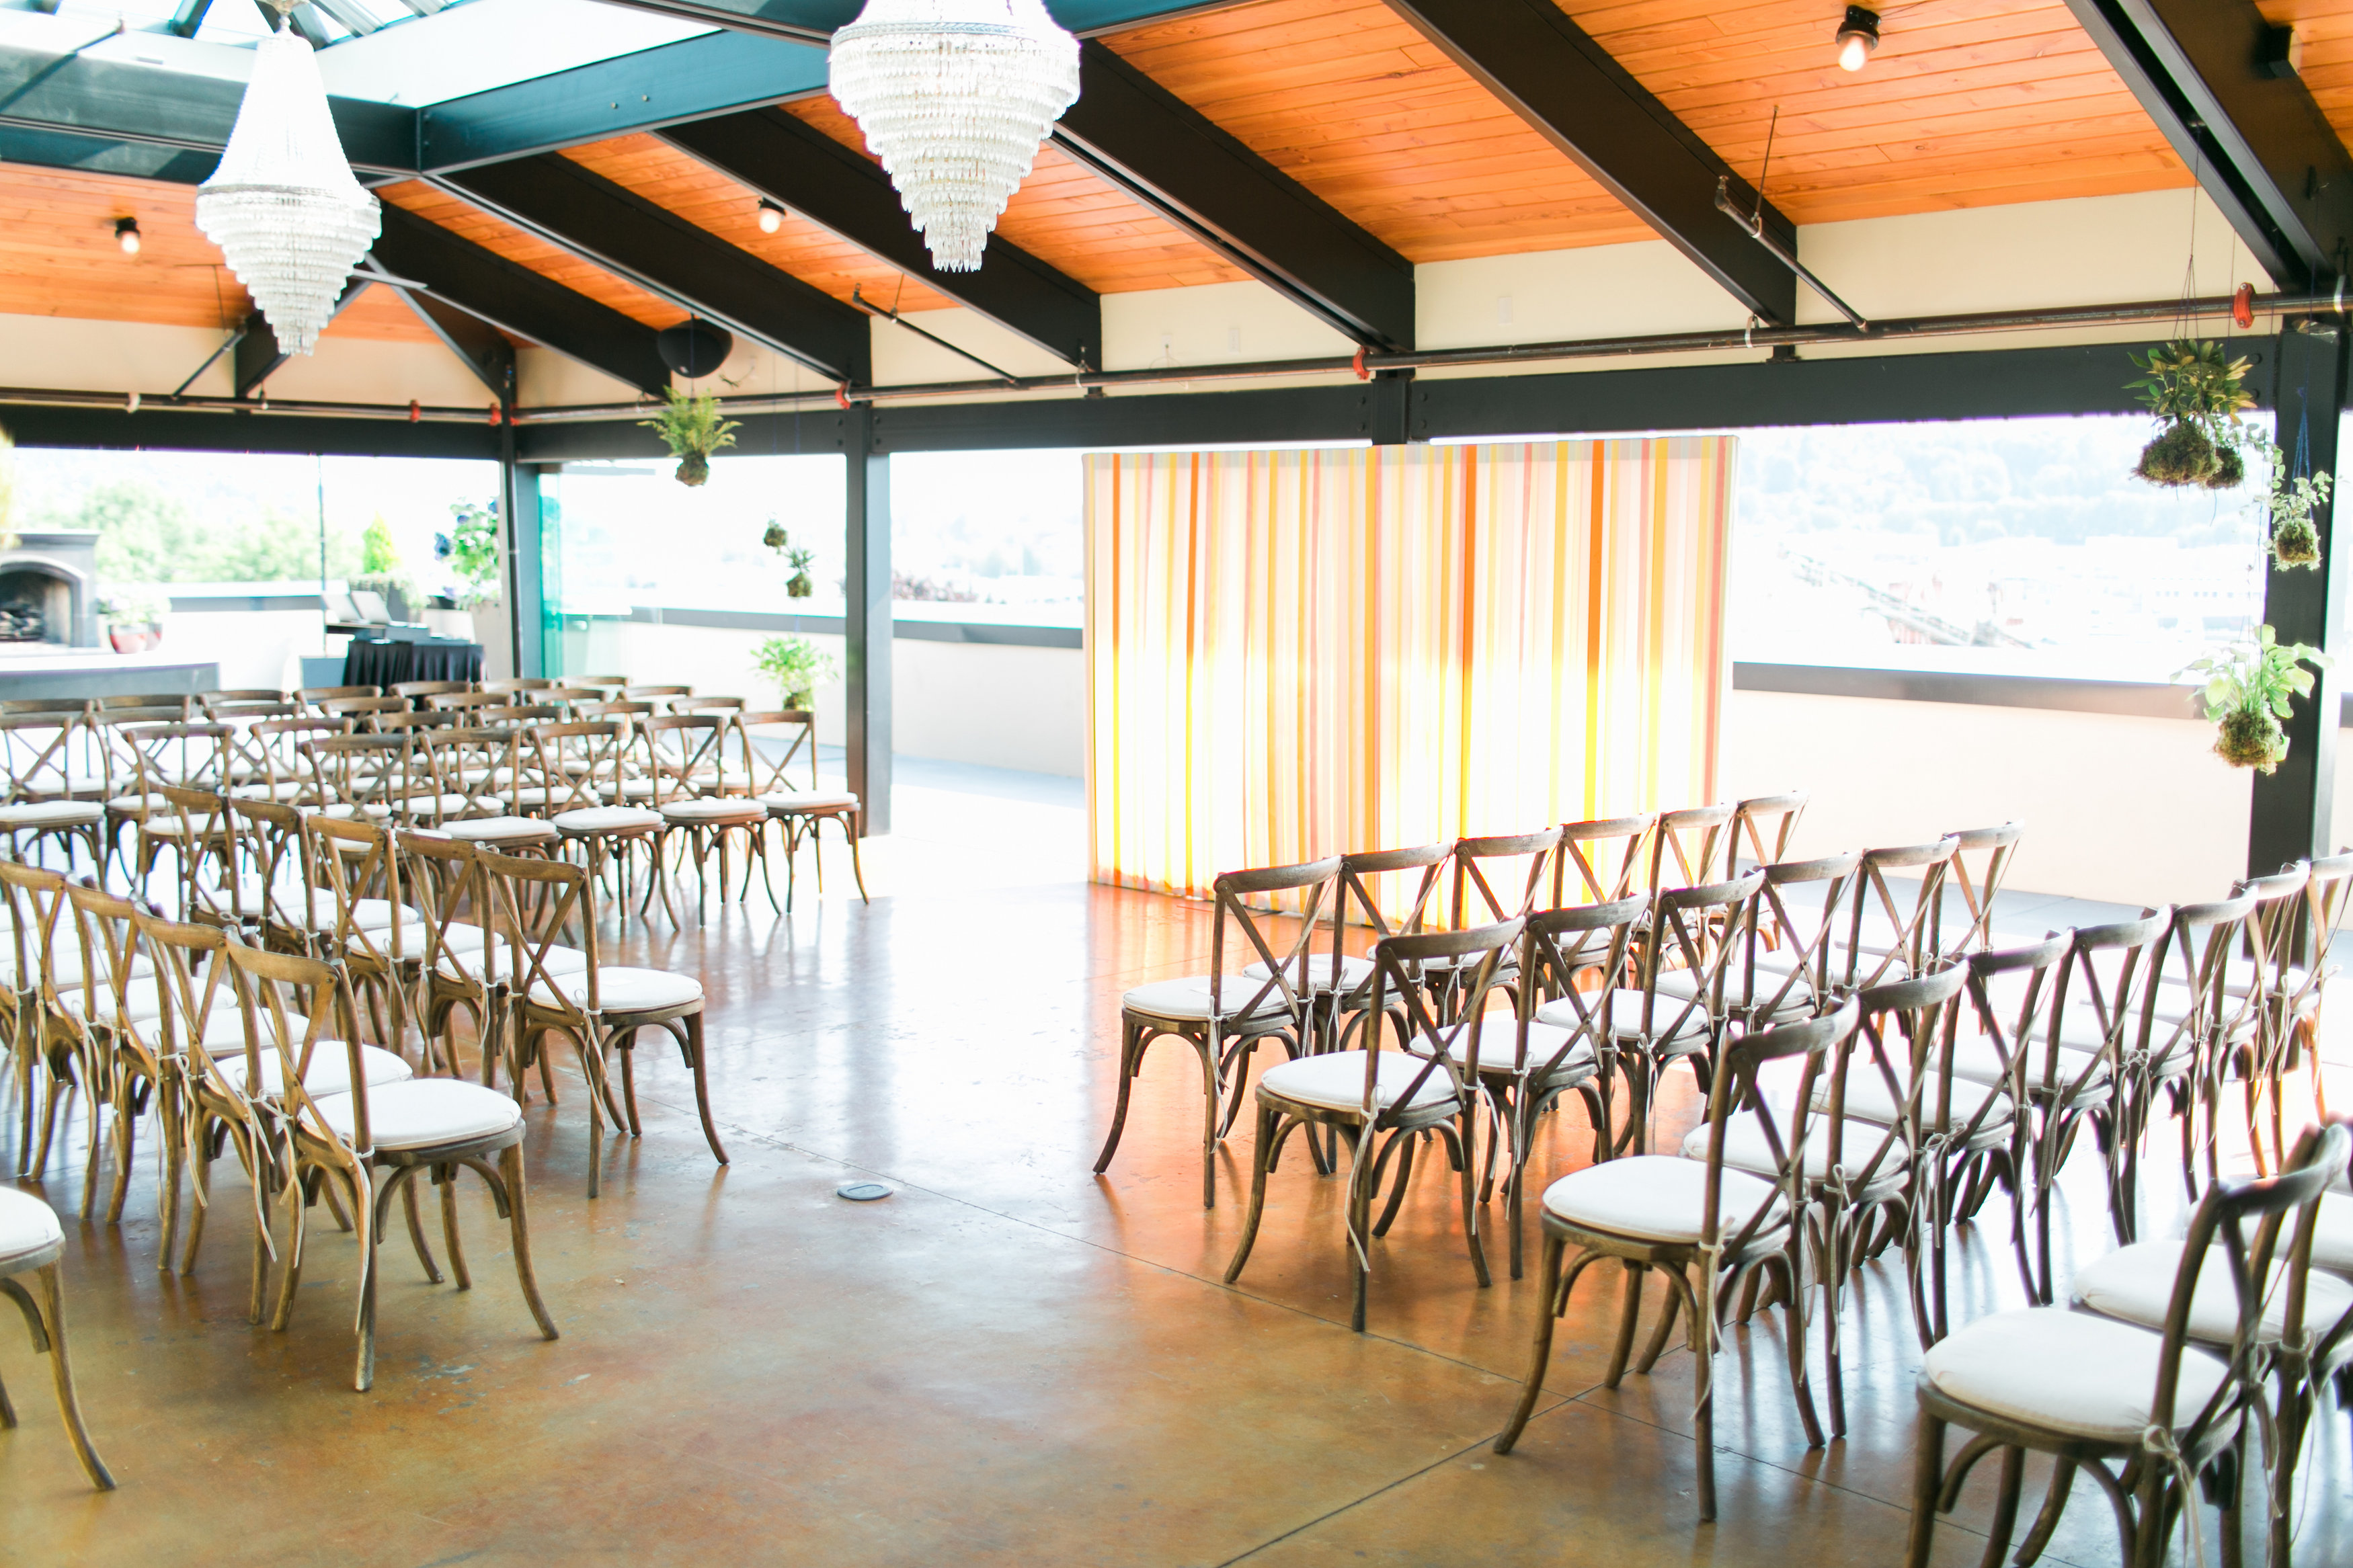 Bright & Playful Summer Wedding - Olympic Rooftop Pavilion by Stoneburner